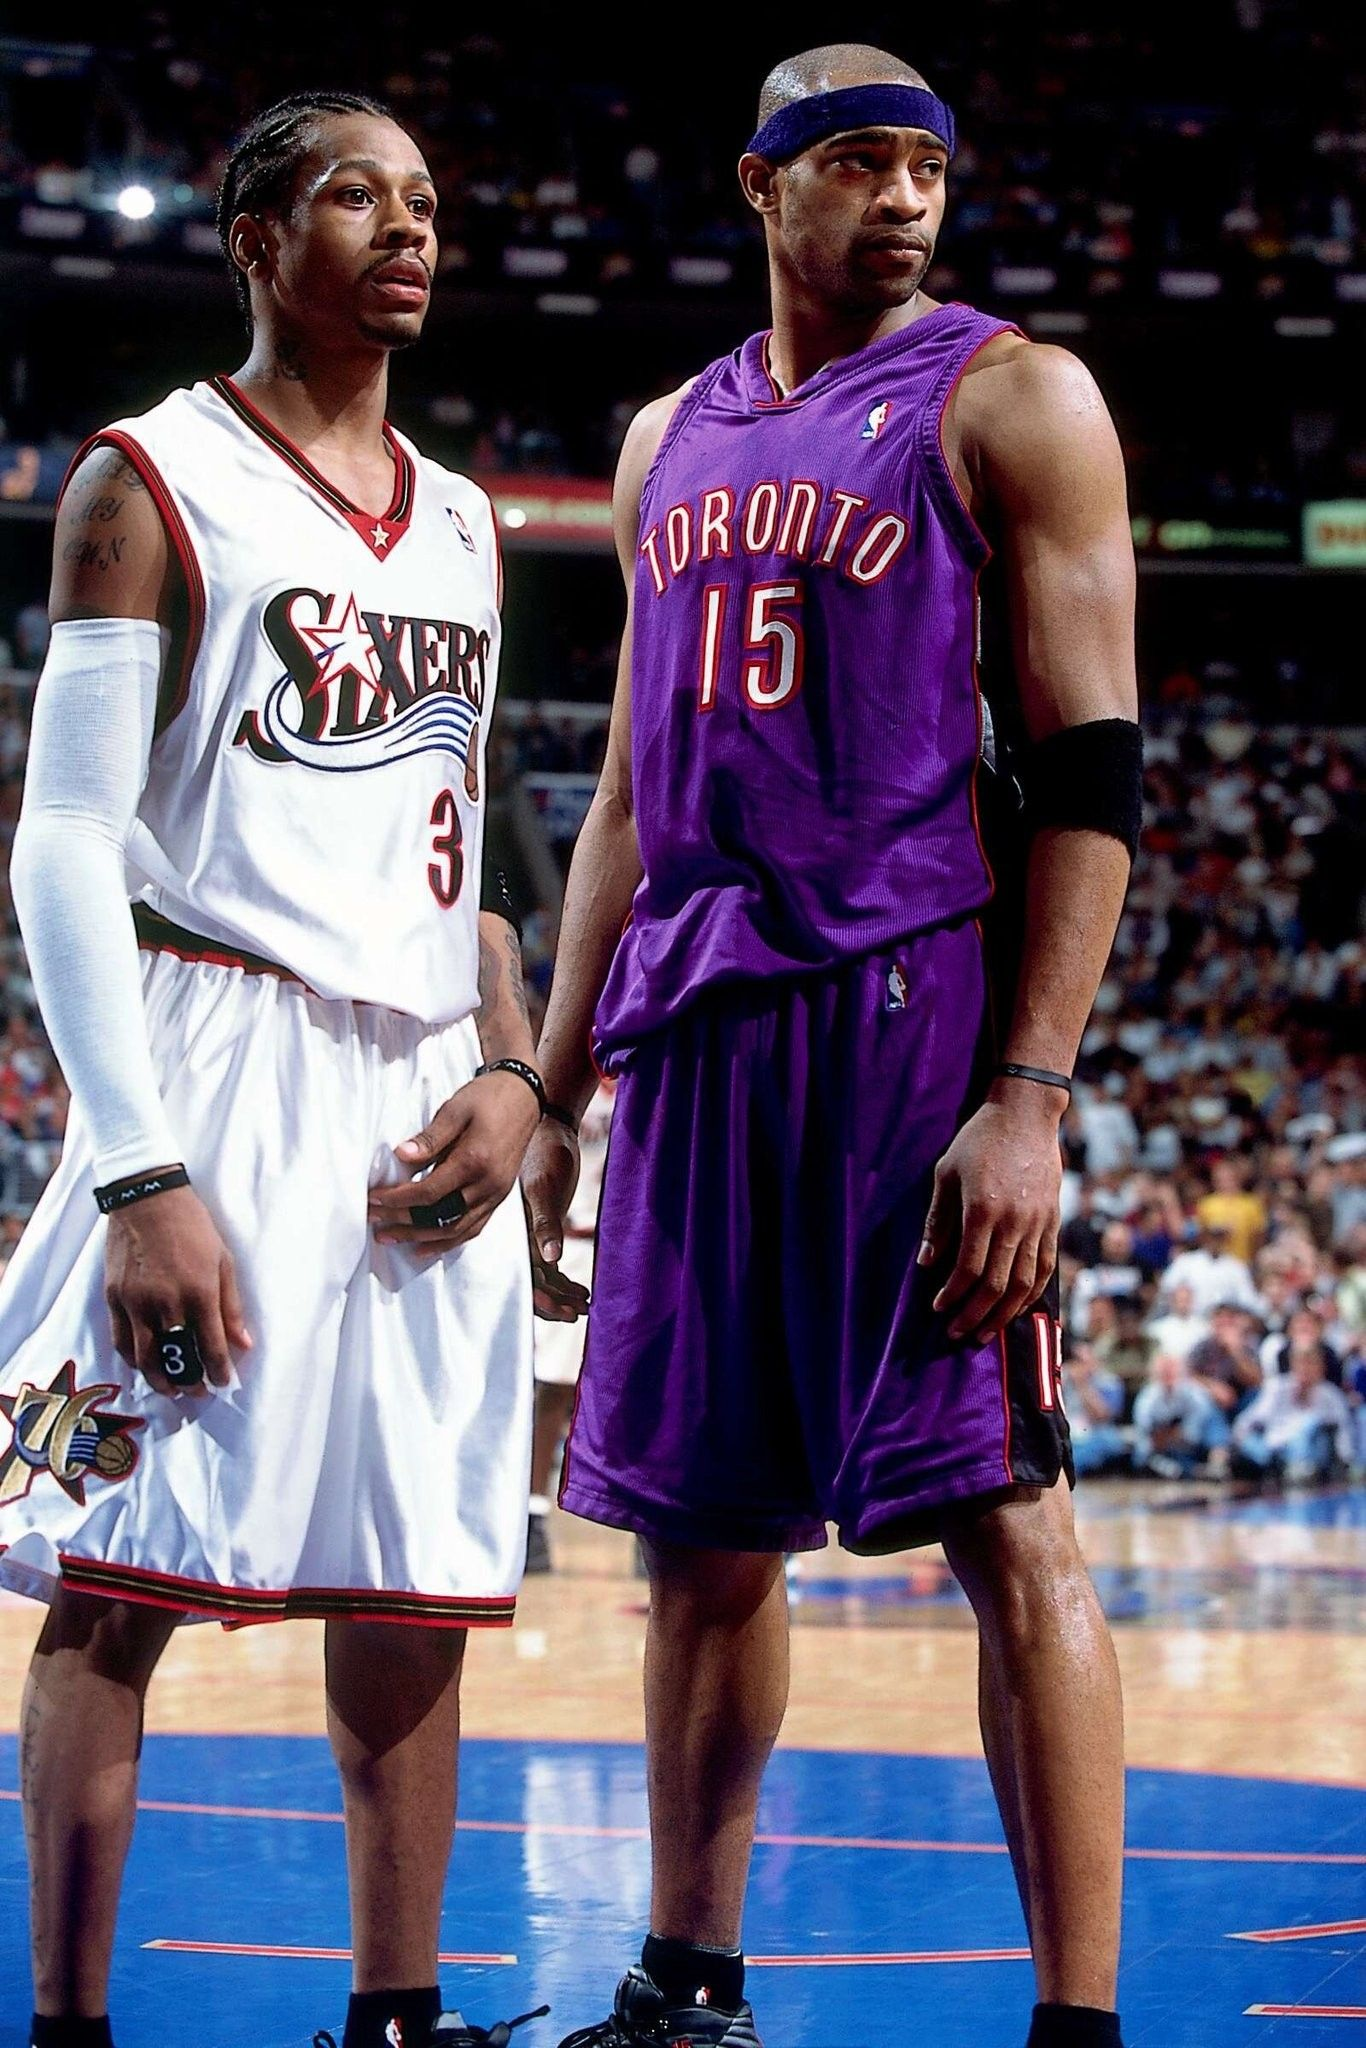 Iverson and Vince Carter